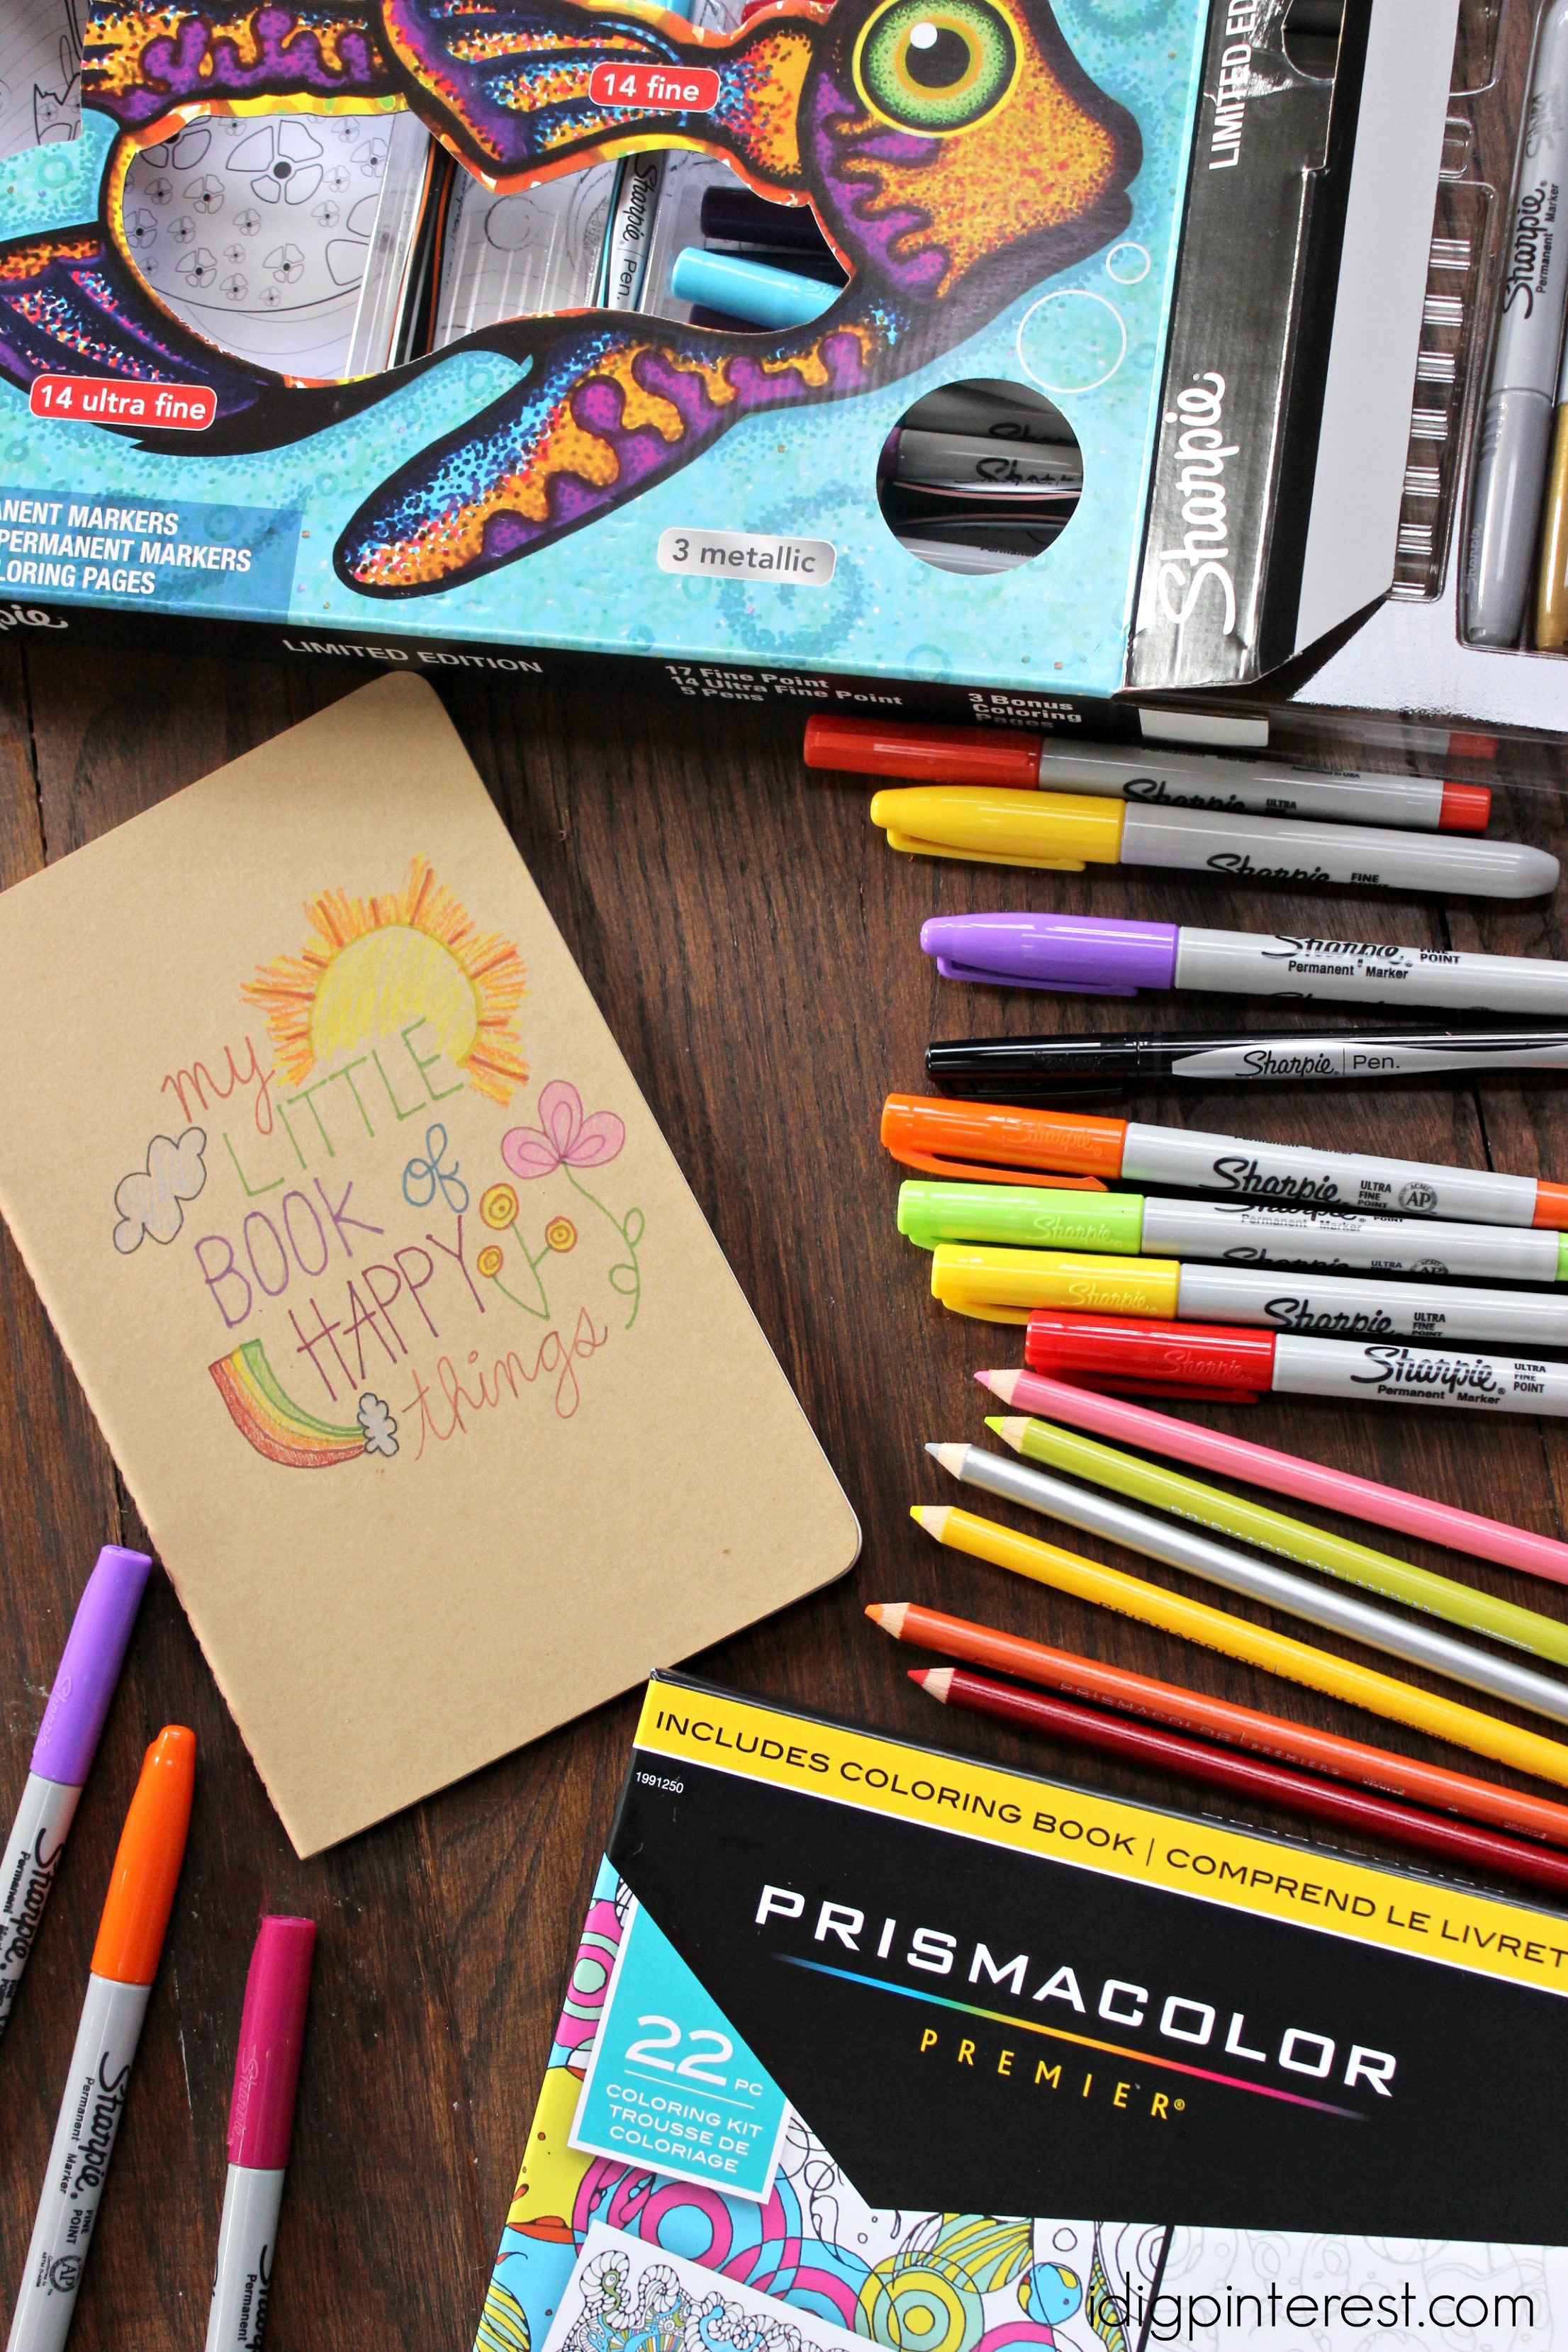 21fe7cb80a My little book of happy things hand lettered journal tutorial i dig  pinterest jpg 2212x3318 Little